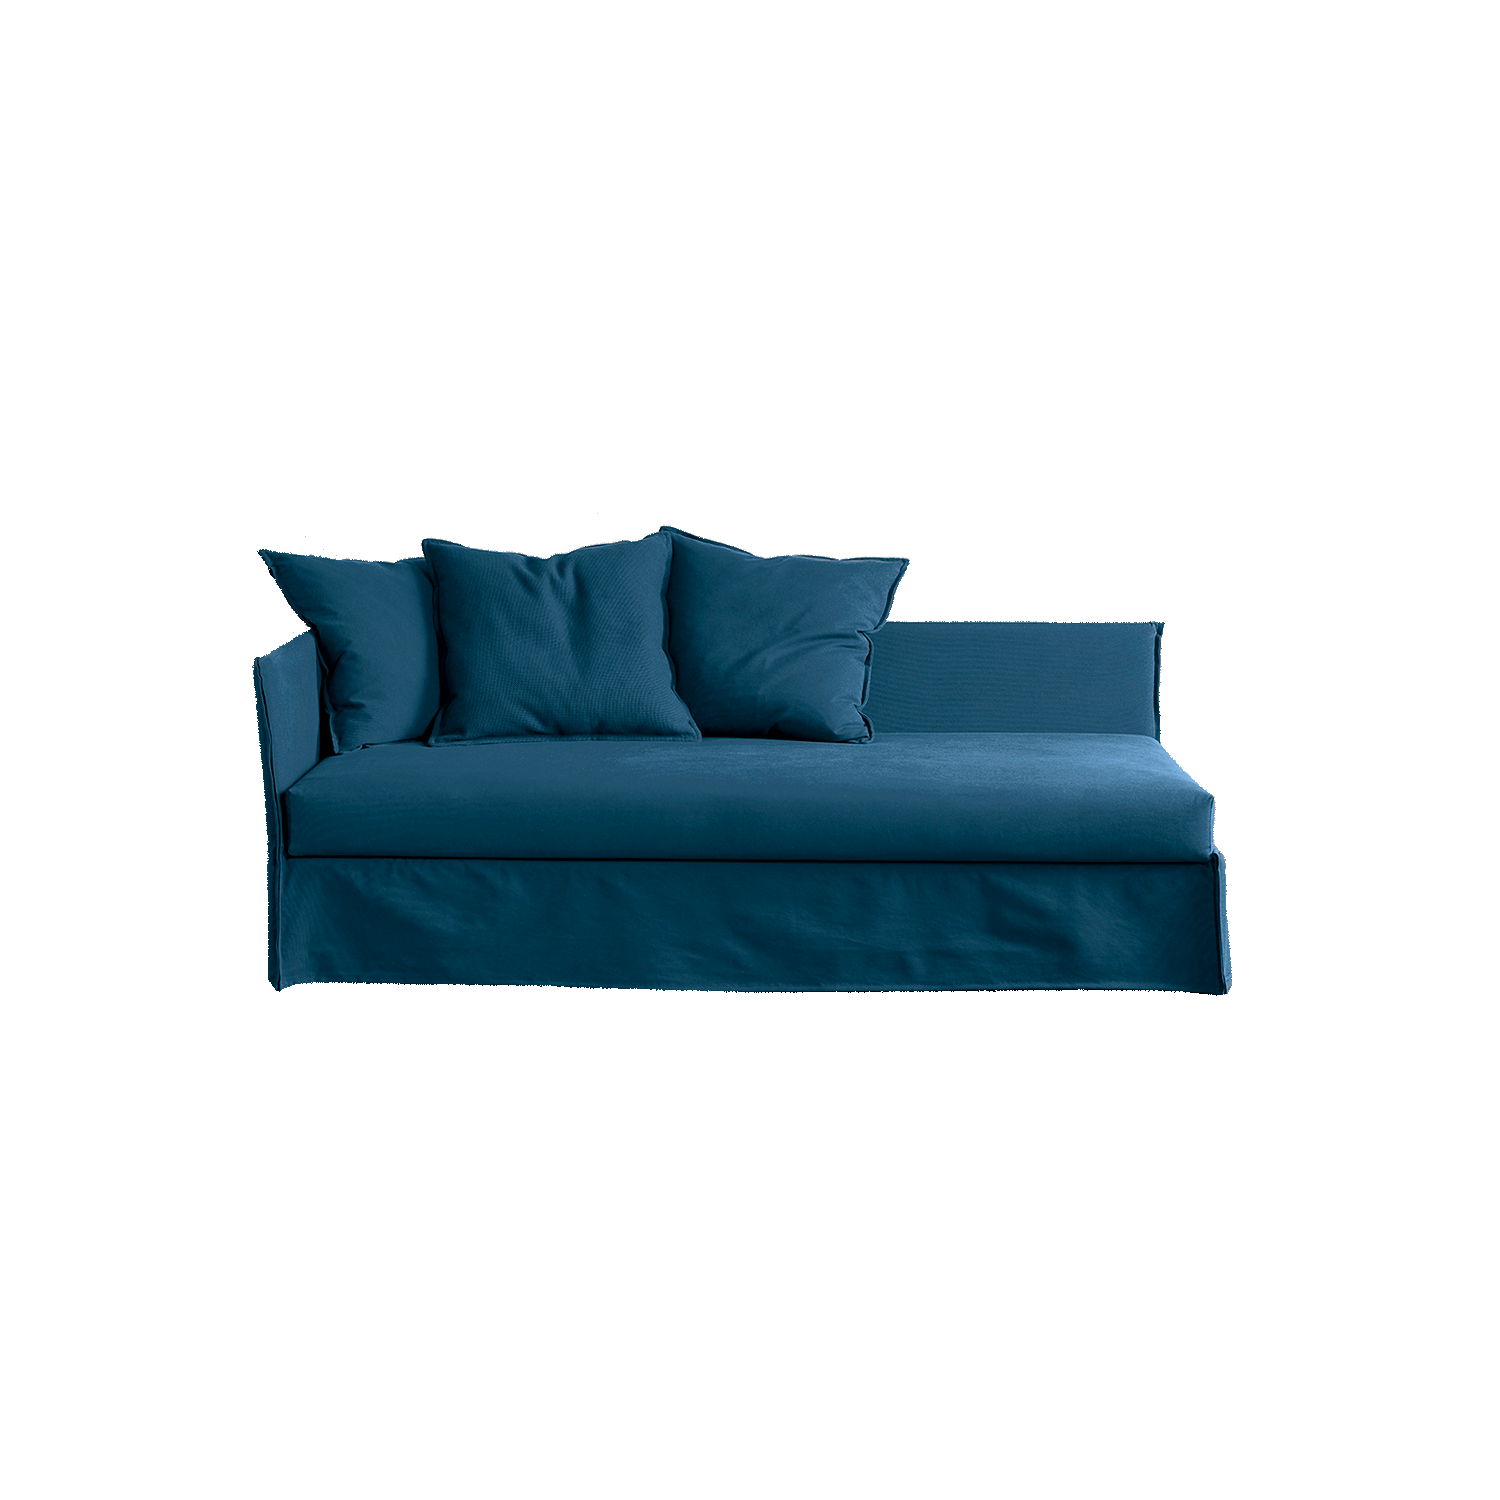 Fox Sofa - Versatile pieces suitable for both the living-room or the night area, distinguished by an essential and pure design; ideal pieces for guestrooms, holiday homes and beautiful casual conversation or lounge corners. Compact volumes and clean lines, with soft covers enriched by decorative cushions, these elements are perfect for any interior style, while the various seating elements offer a great flexibility in terms of configuration.  The sofa is available in different colours and configurations. Please enquire for more details. | Matter of Stuff